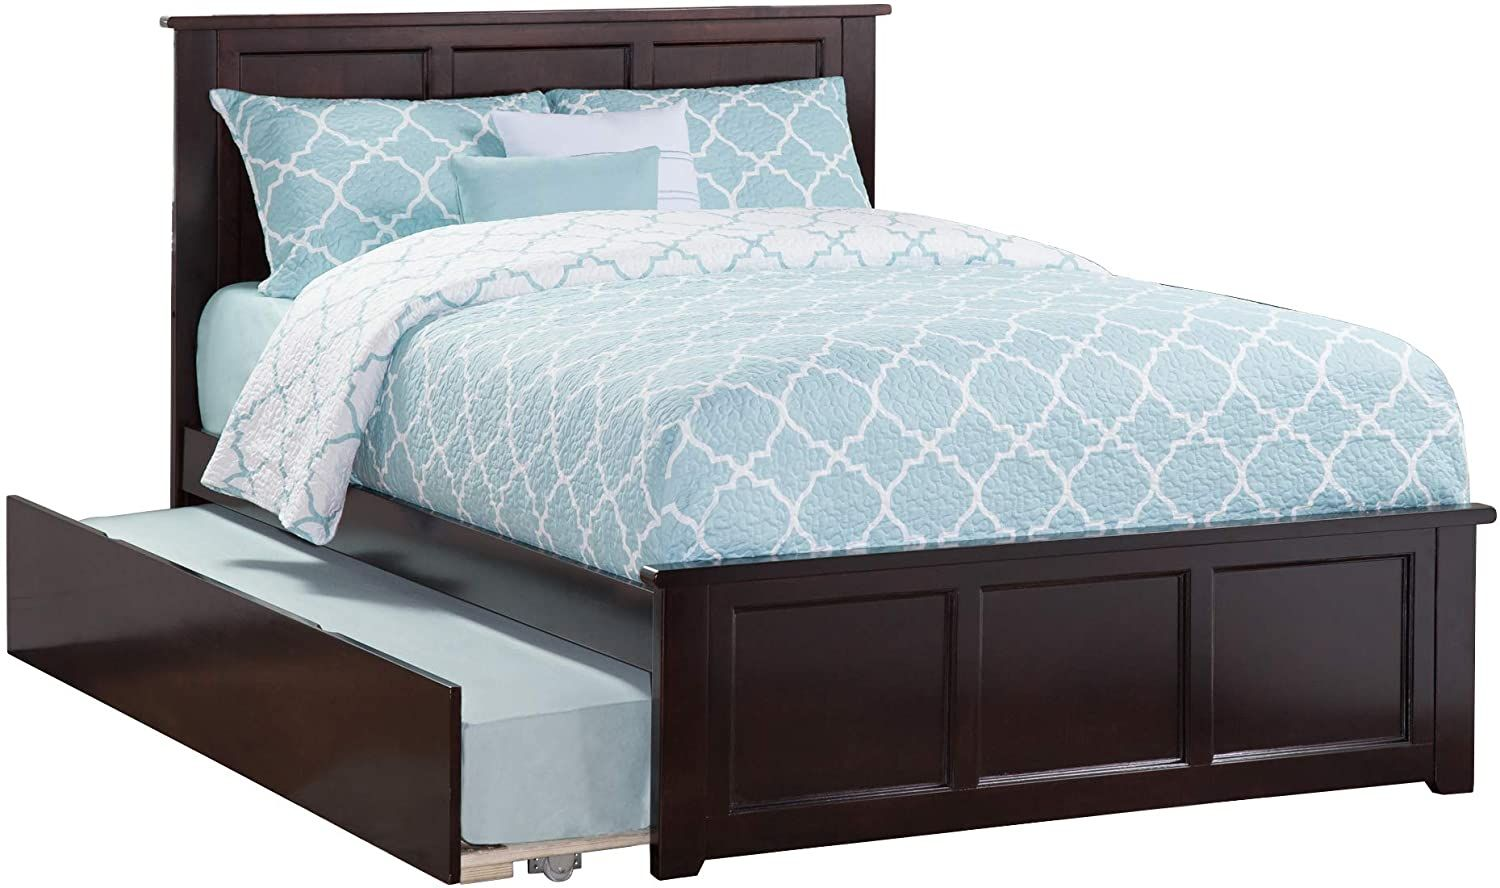 Atlantic Furniture Platform Bed with Matching Footboard